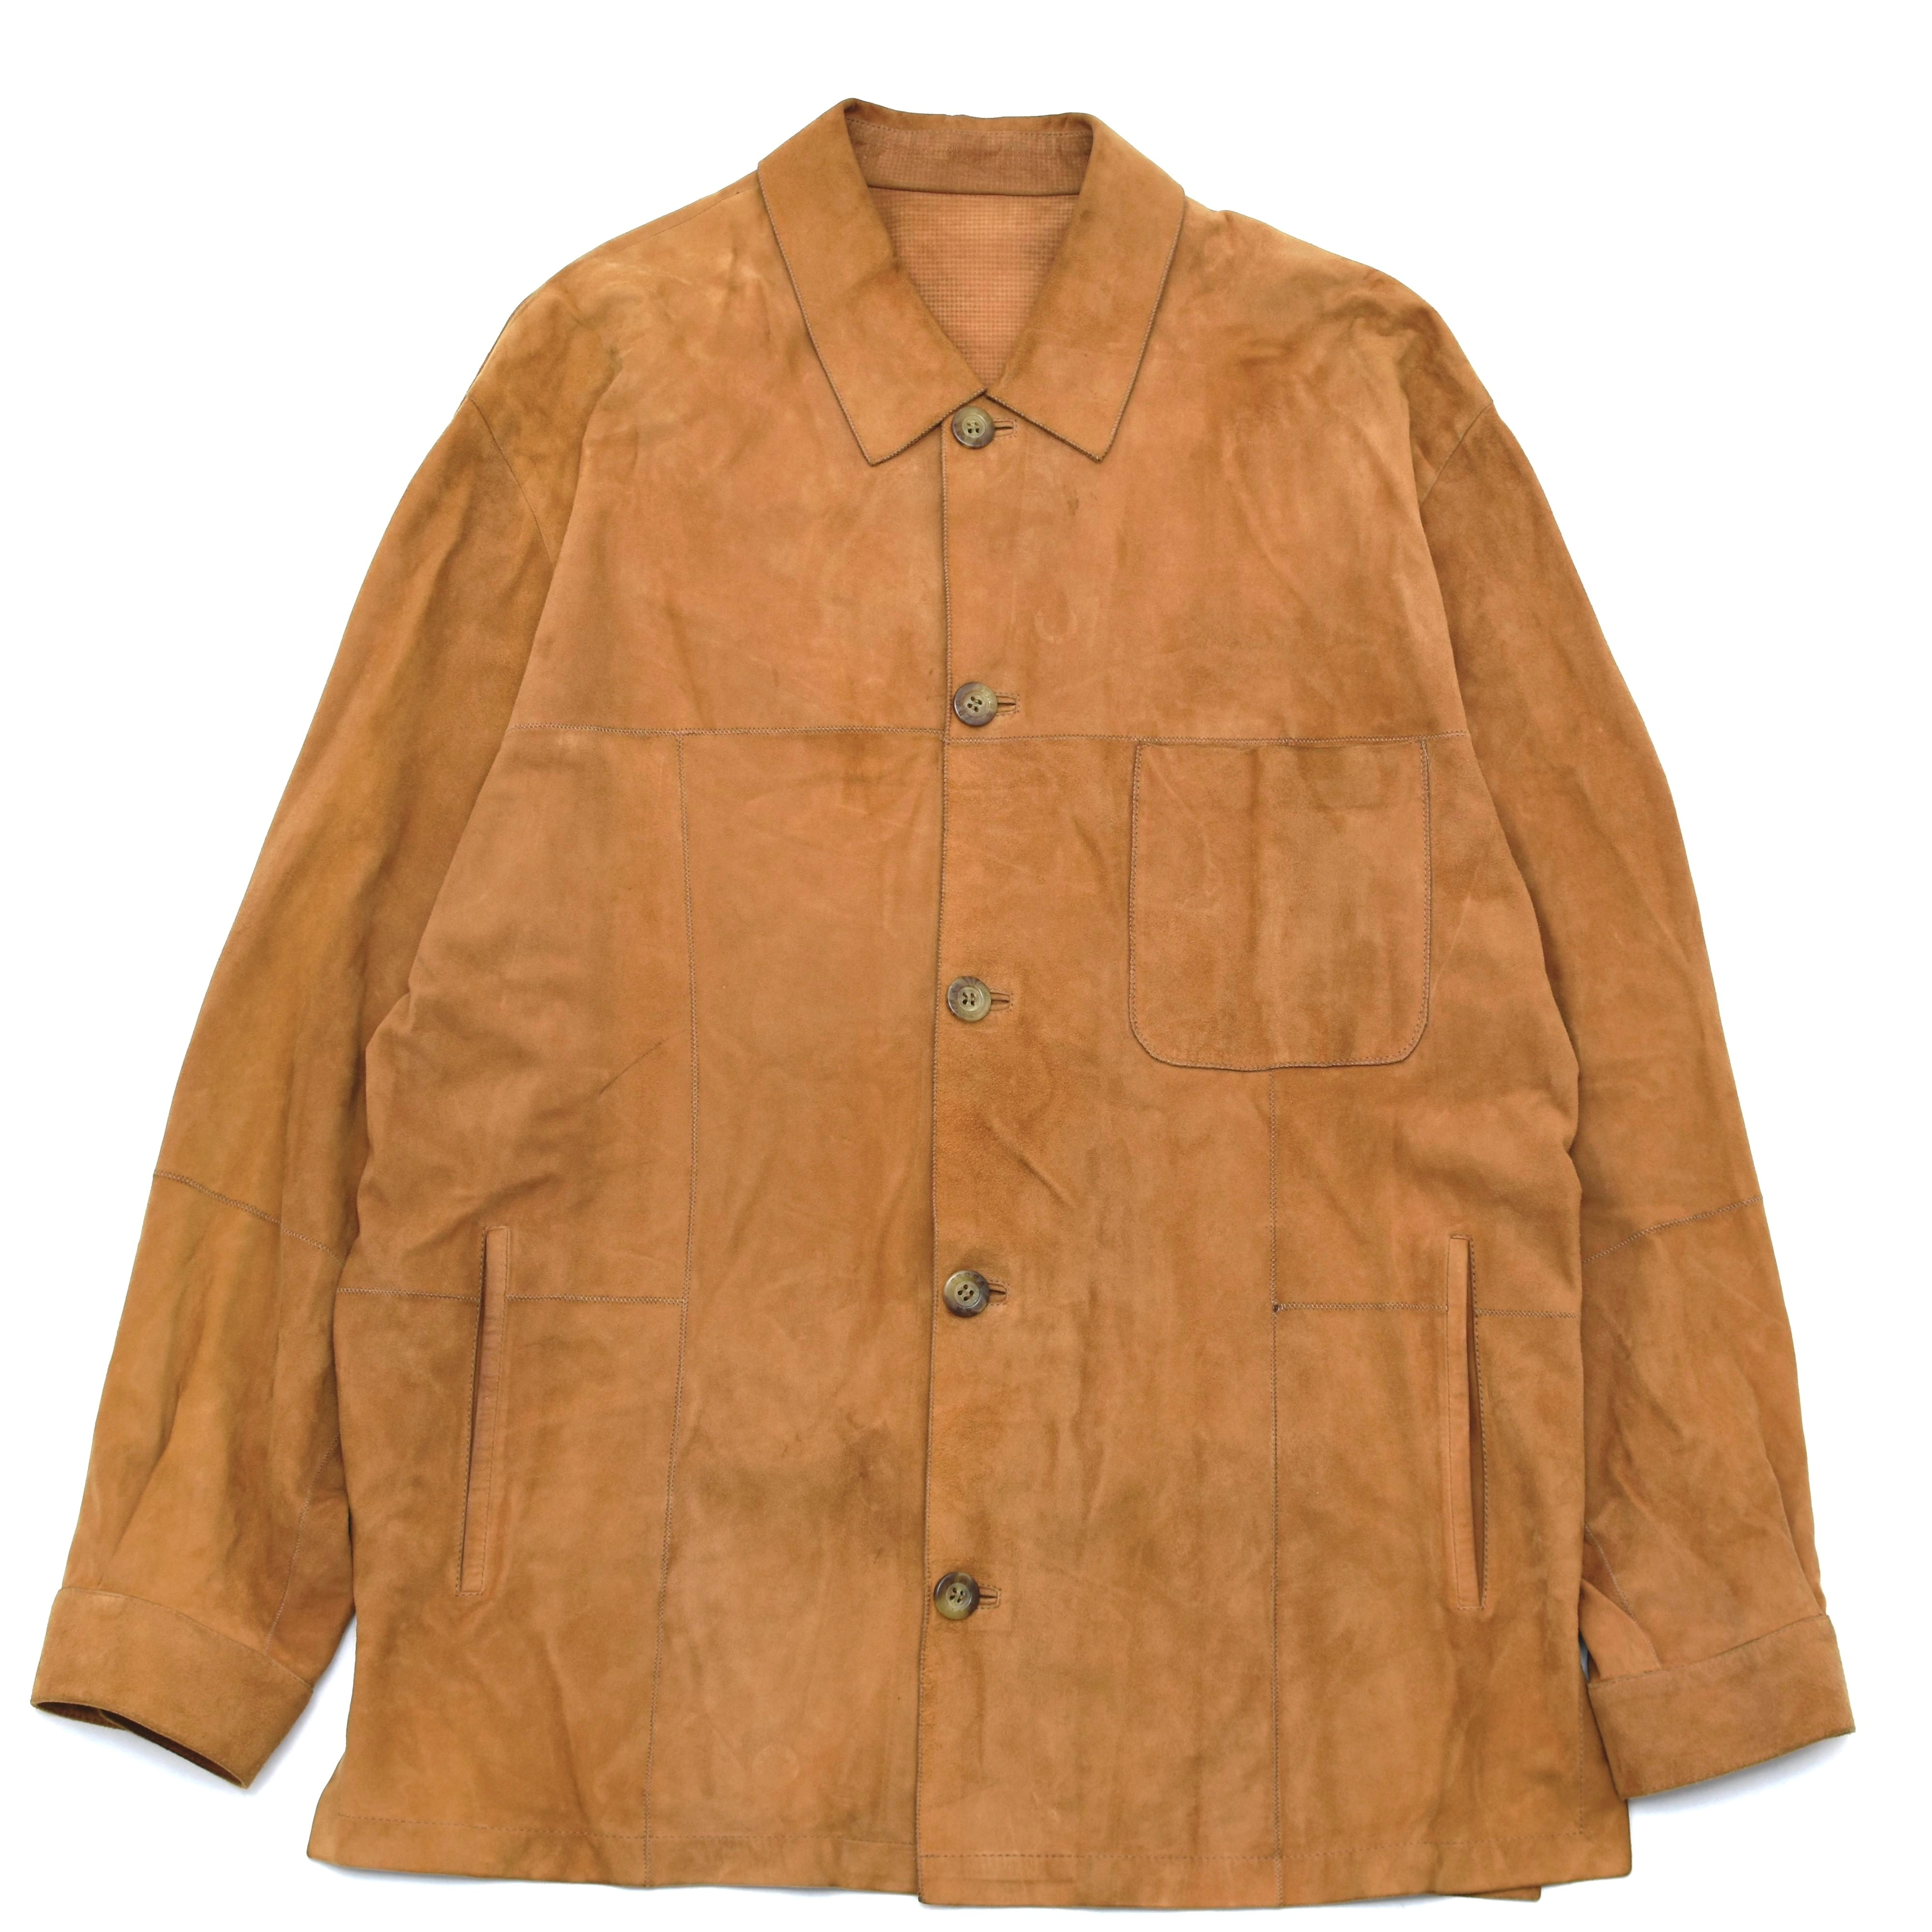 Suede leather shirt jkt Made in Spain